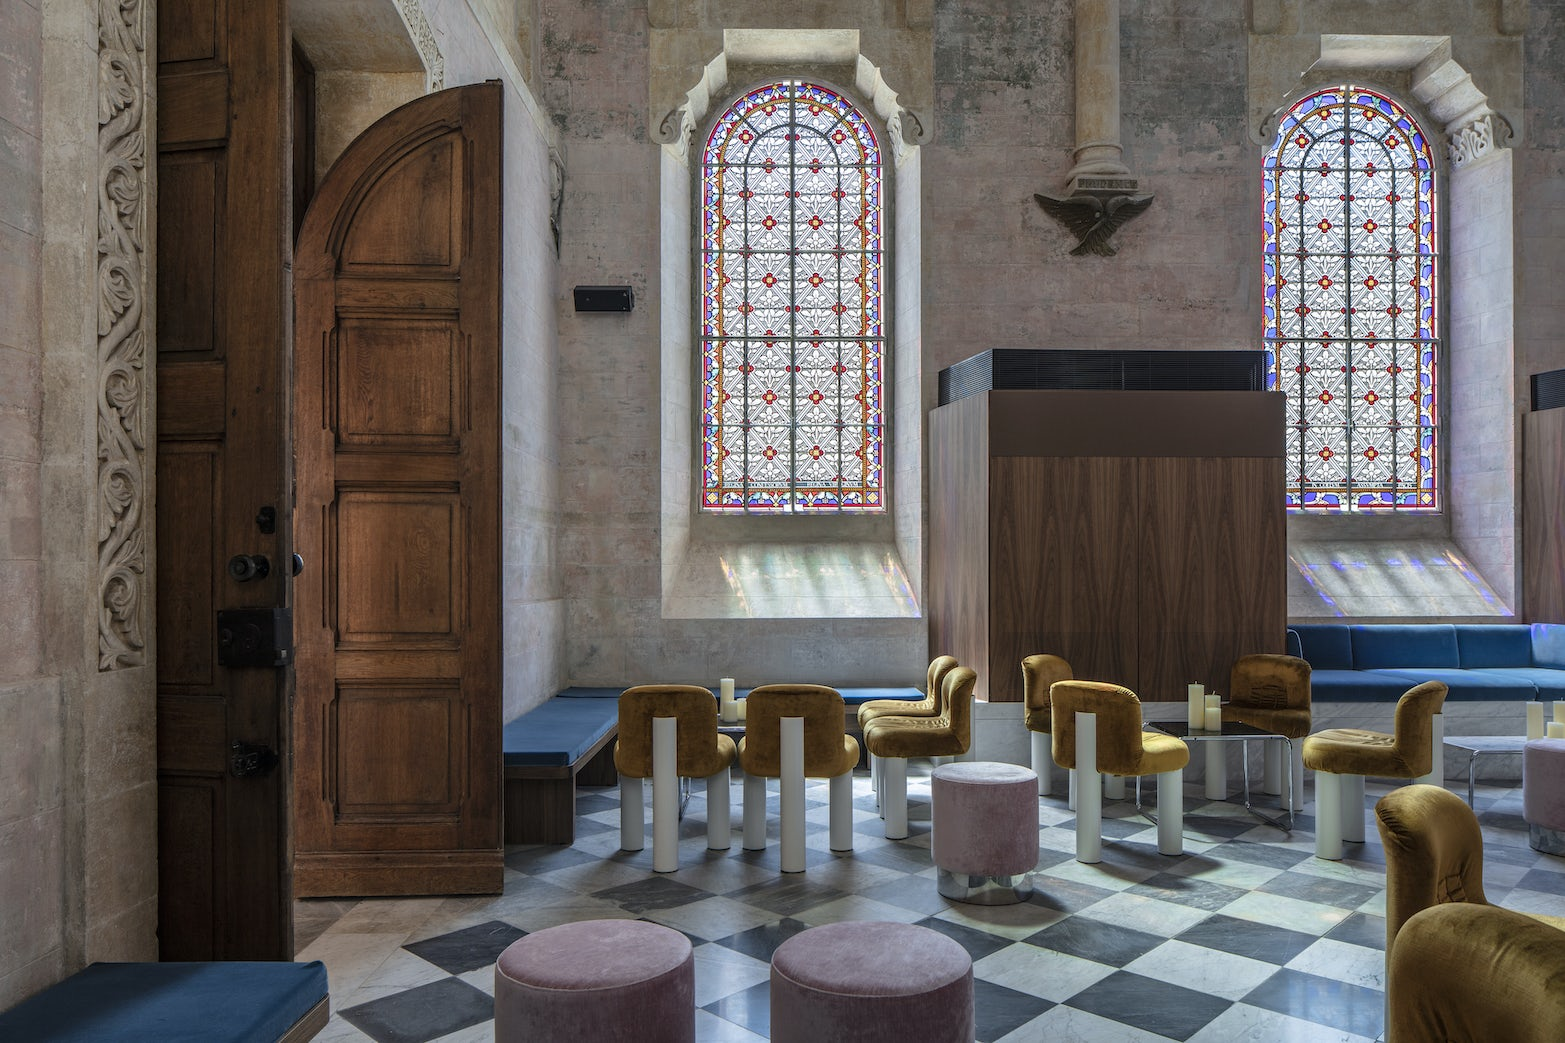 The Jaffa Chapel Image Credit Amit Geron 1